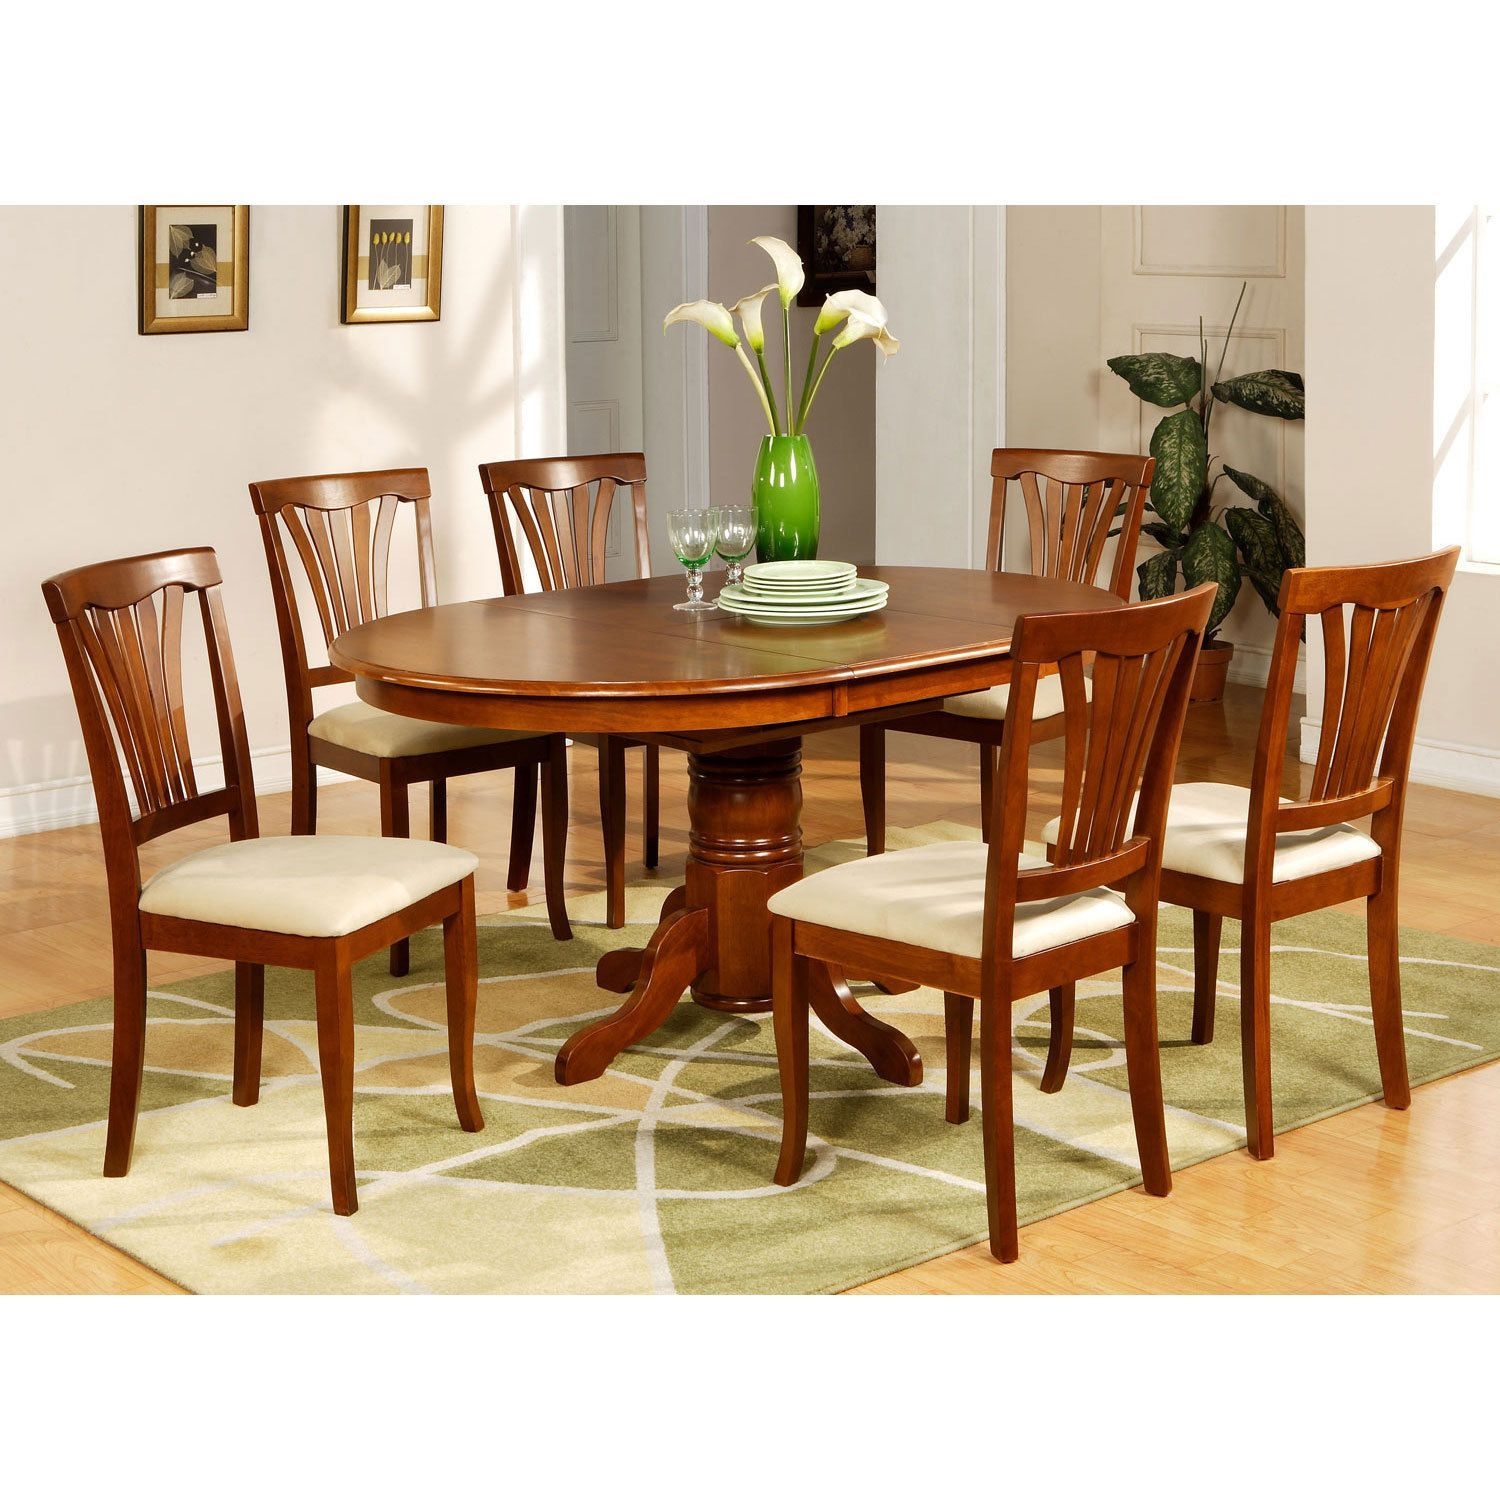 5 Piece Oval Dinette Table With Leaf And 4 Dining Chairs